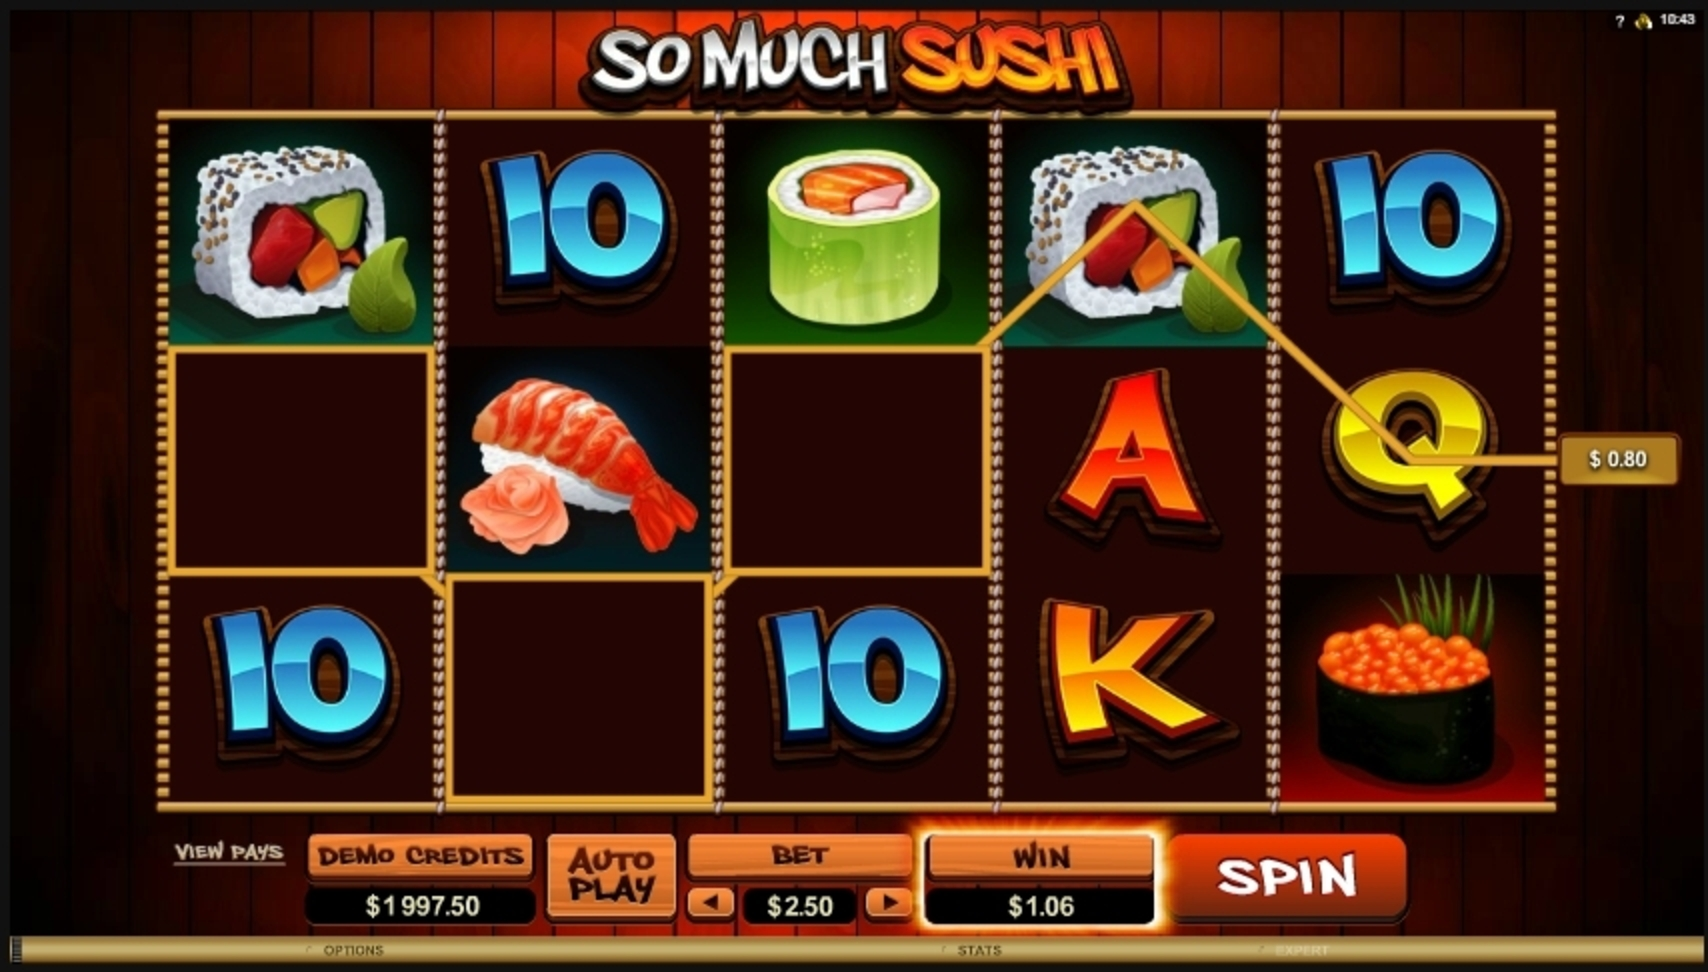 Win Money in So Much Sushi Free Slot Game by Microgaming